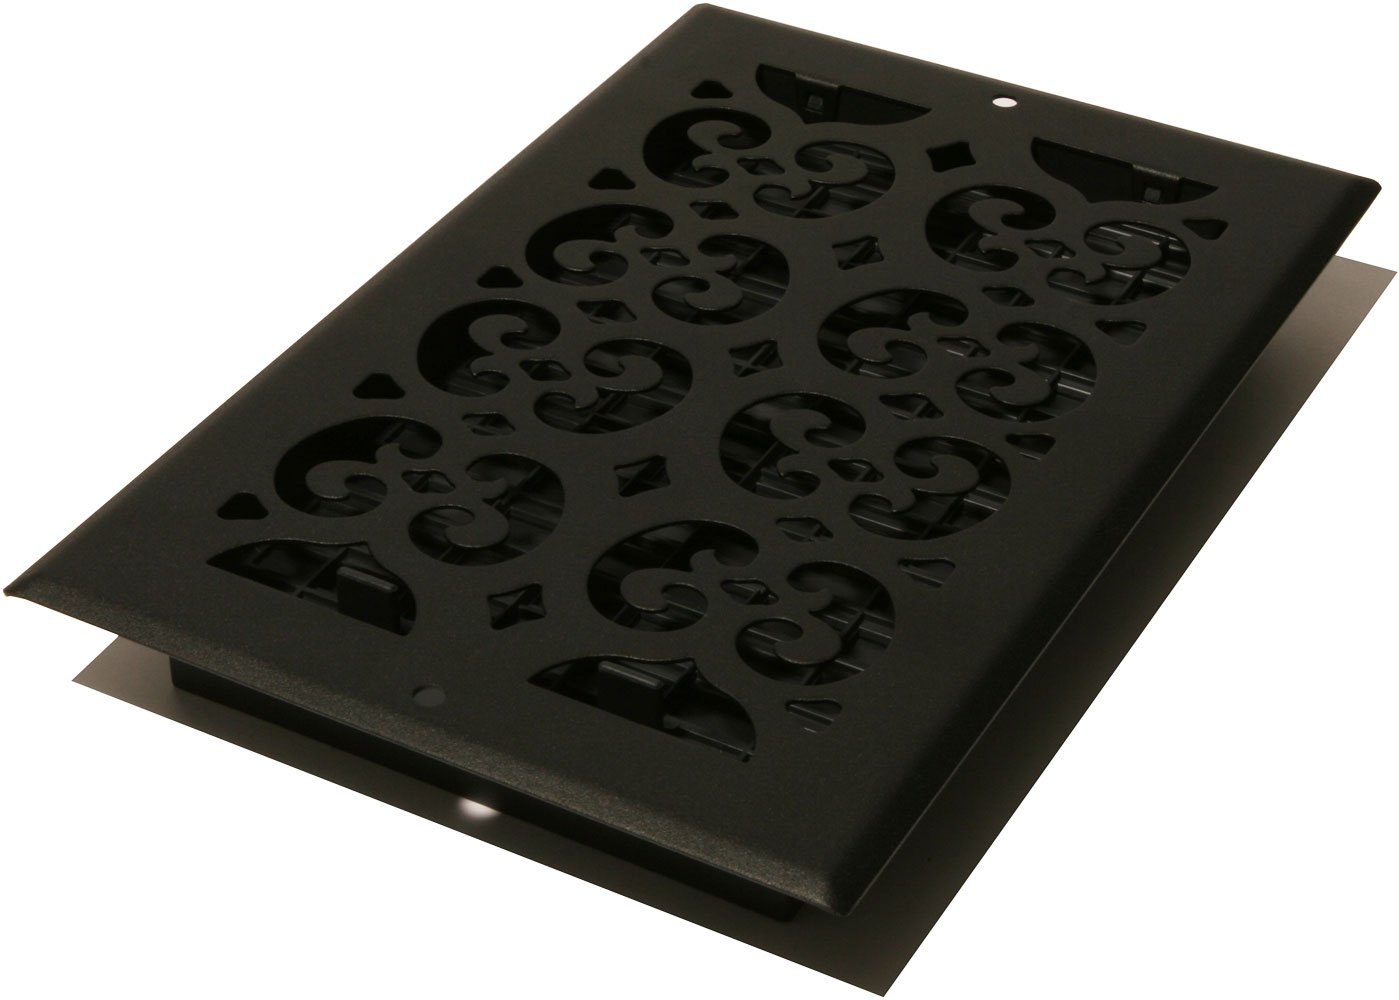 Decor Grates ST610W 6-Inch by 10-Inch Painted Wall Register, Black Textured